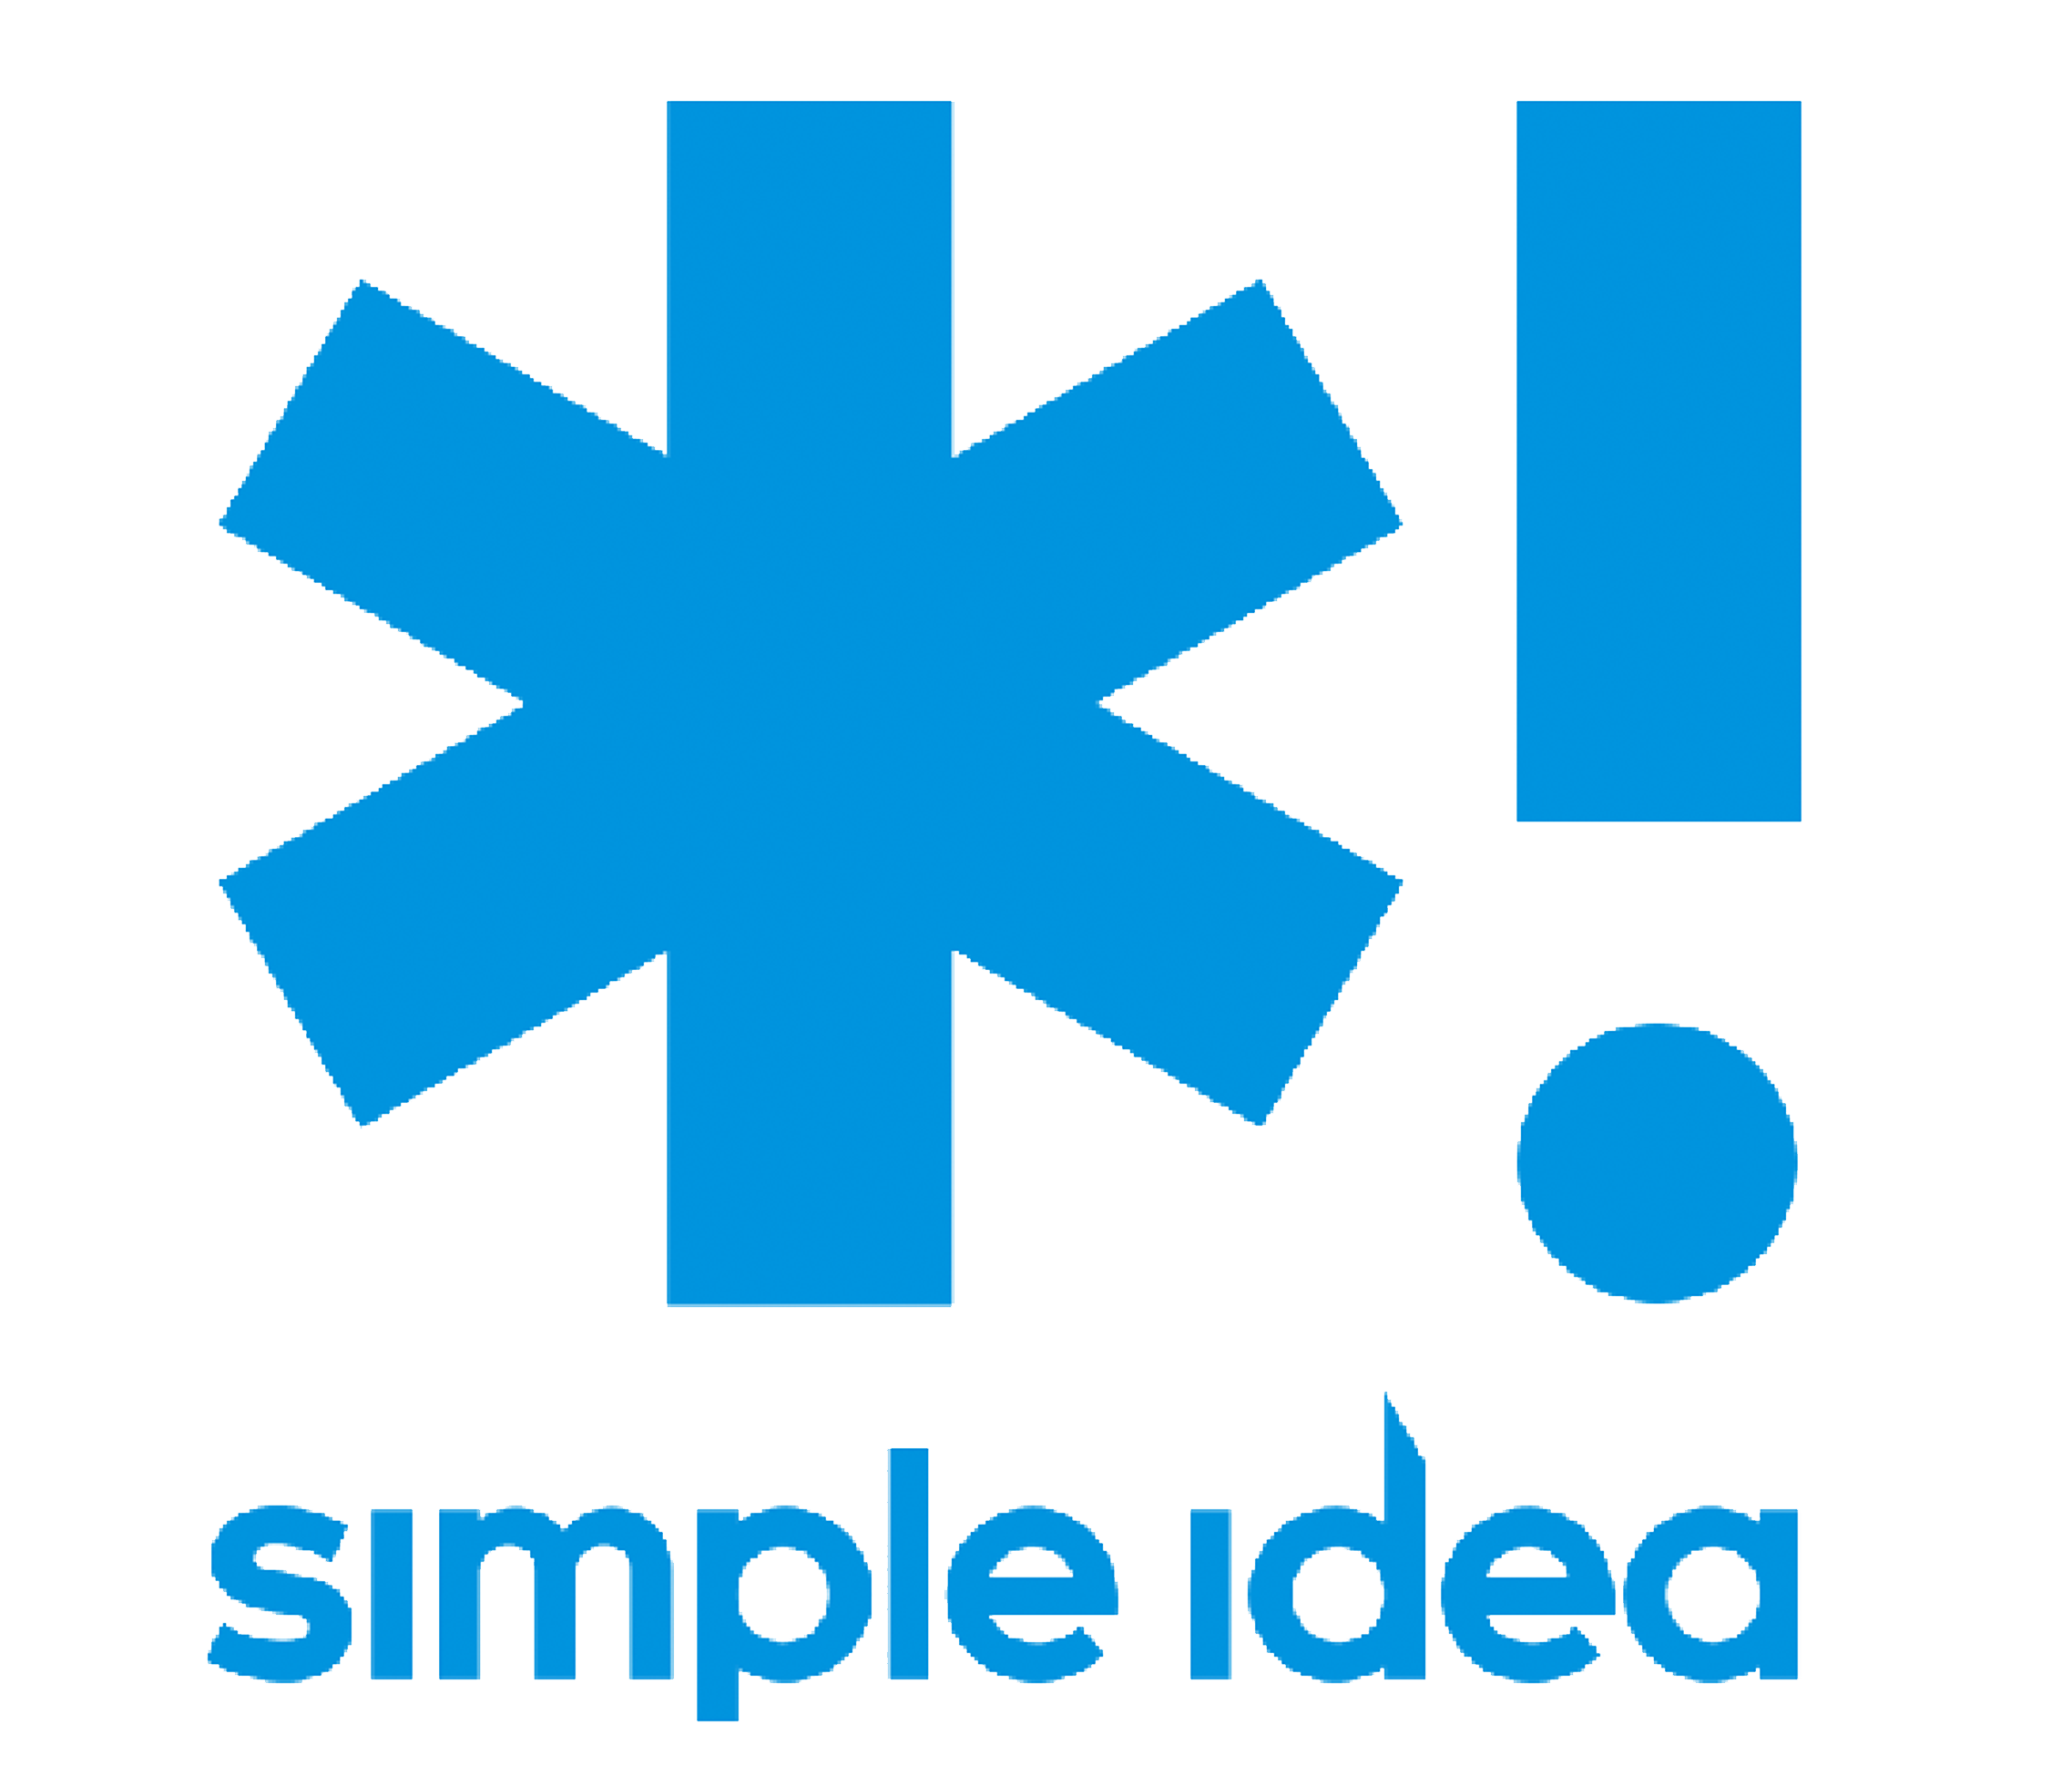 simple idea logo